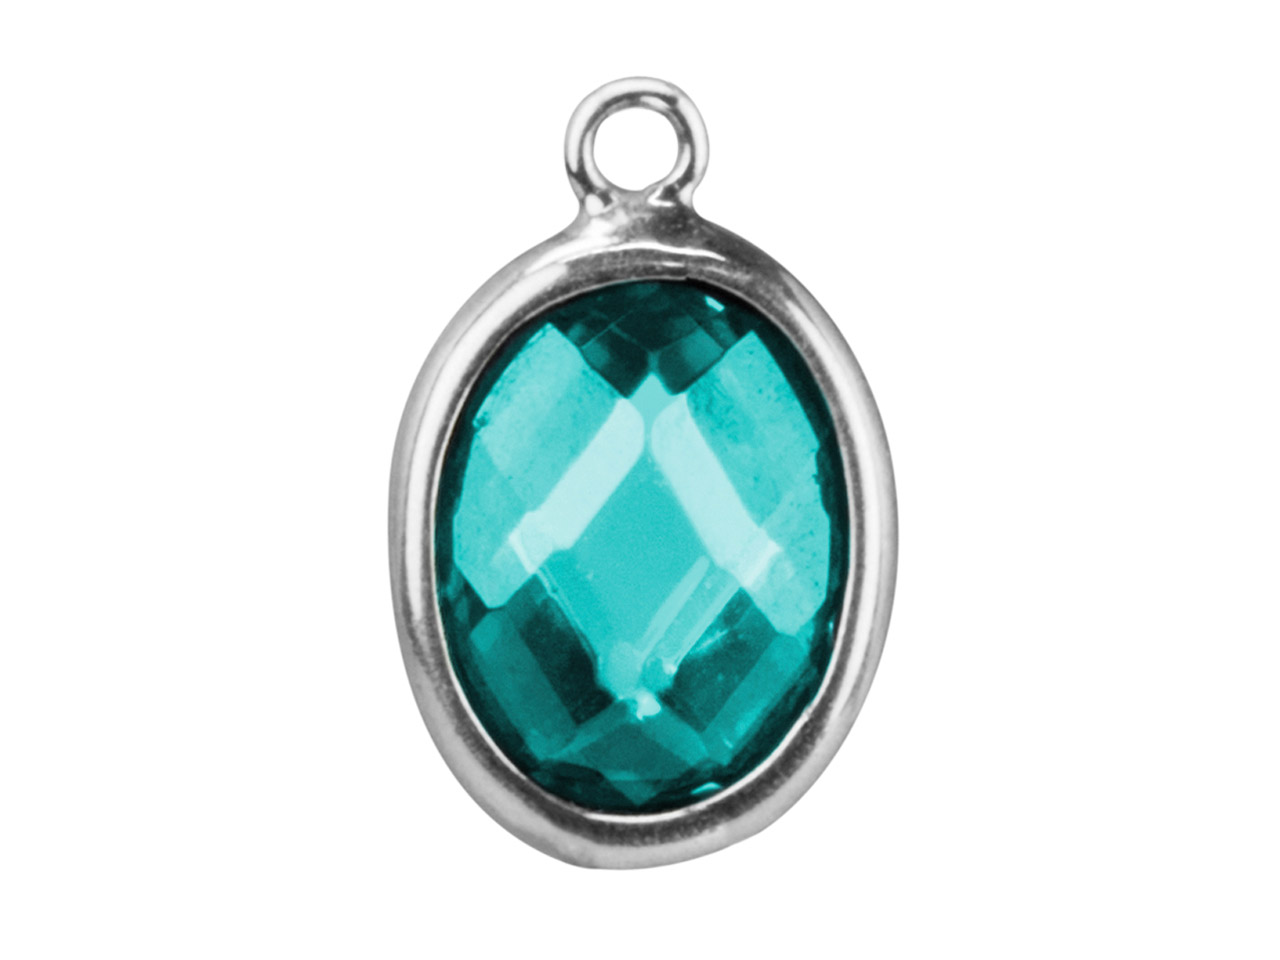 Sterling Silver Oval Drop With Aqua Colour Cubic Zirconia 1 Flat Loop   10x8mm